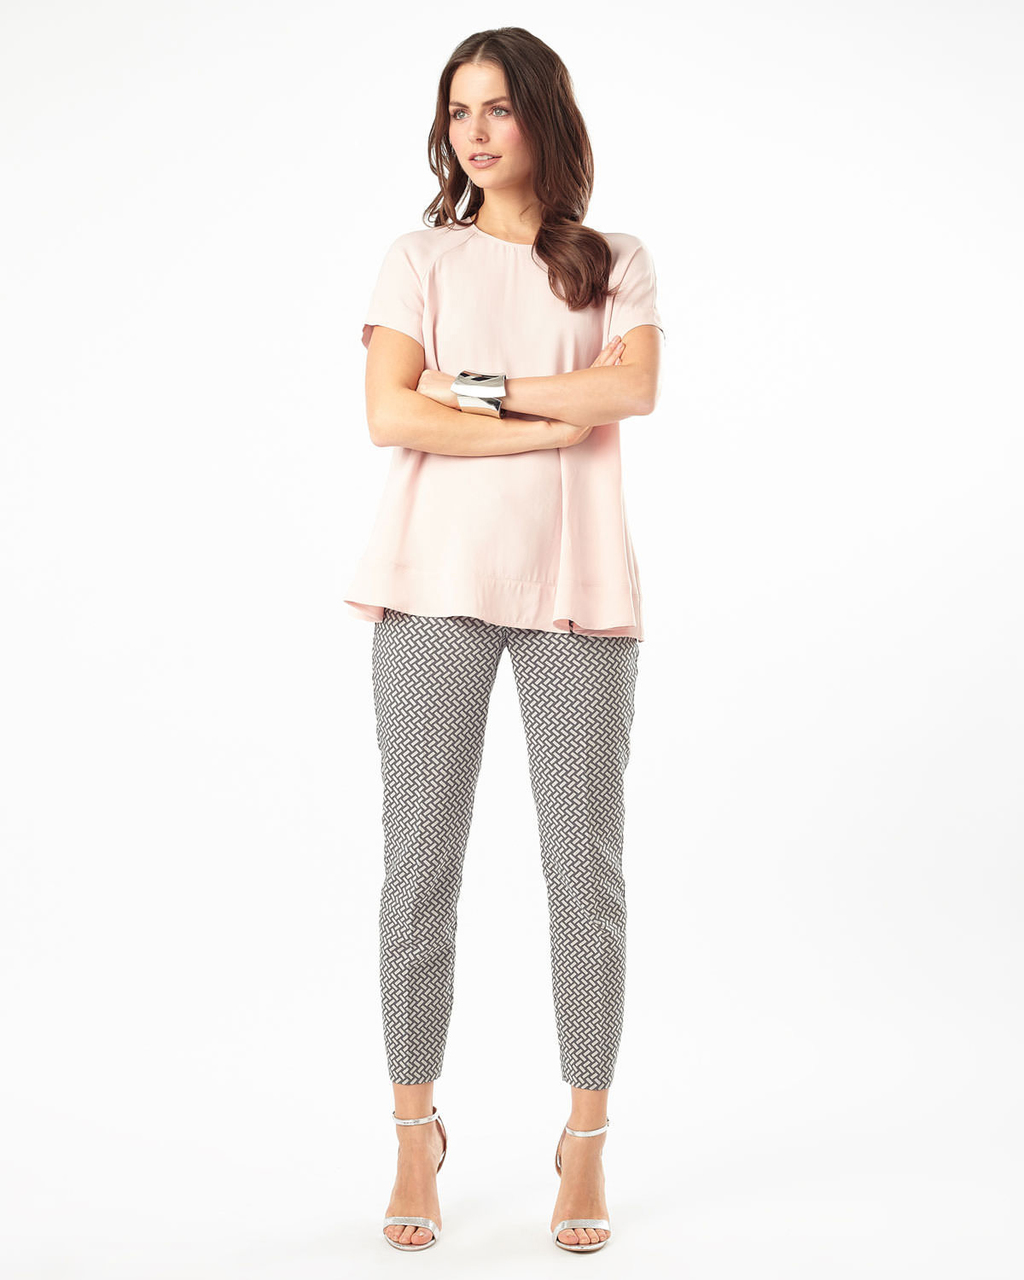 Erica Basketweave Trouser - pattern: plain; waist: mid/regular rise; secondary colour: ivory/cream; predominant colour: light grey; length: ankle length; fibres: polyester/polyamide - mix; fit: slim leg; pattern type: fabric; texture group: brocade/jacquard; style: standard; occasions: creative work; season: a/w 2015; wardrobe: basic